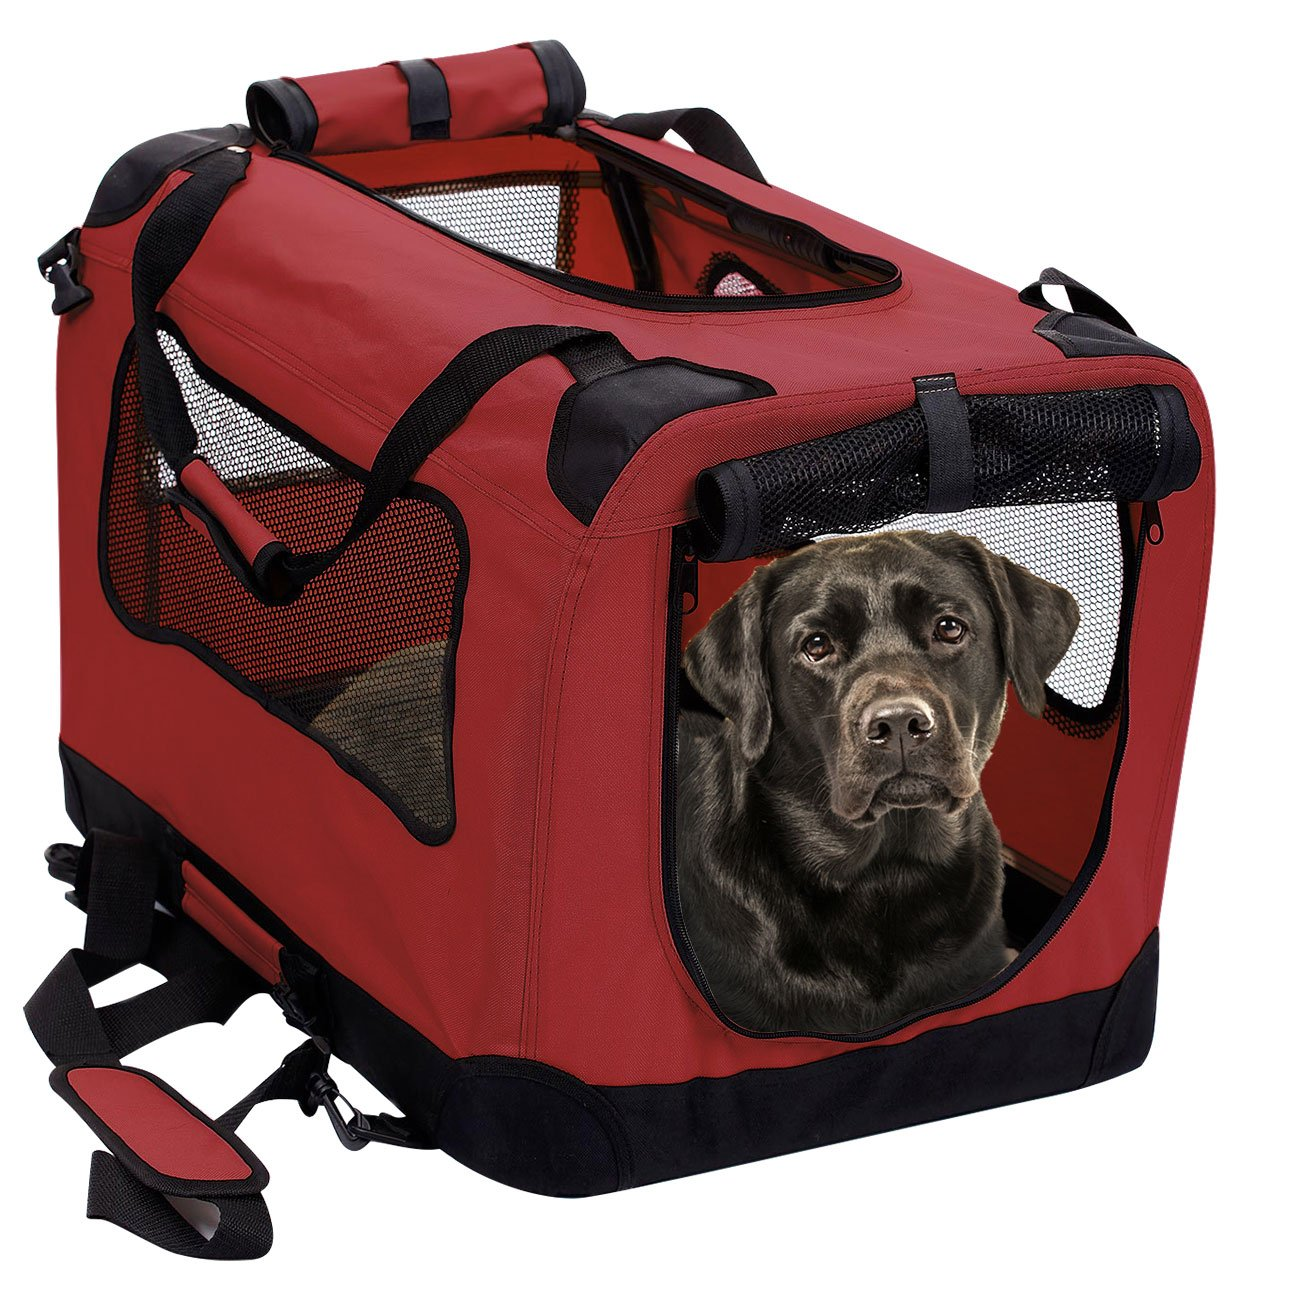 Rawhide Red XXLarge 36in2PET Foldable Dog Crate  Soft, Easy to Fold & Carry Dog Crate for Indoor & Outdoor Use  Comfy Dog Home & Dog Travel Crate  Strong Steel Frame, Washable Fabric Cover, Frontal Zipper Large bluee